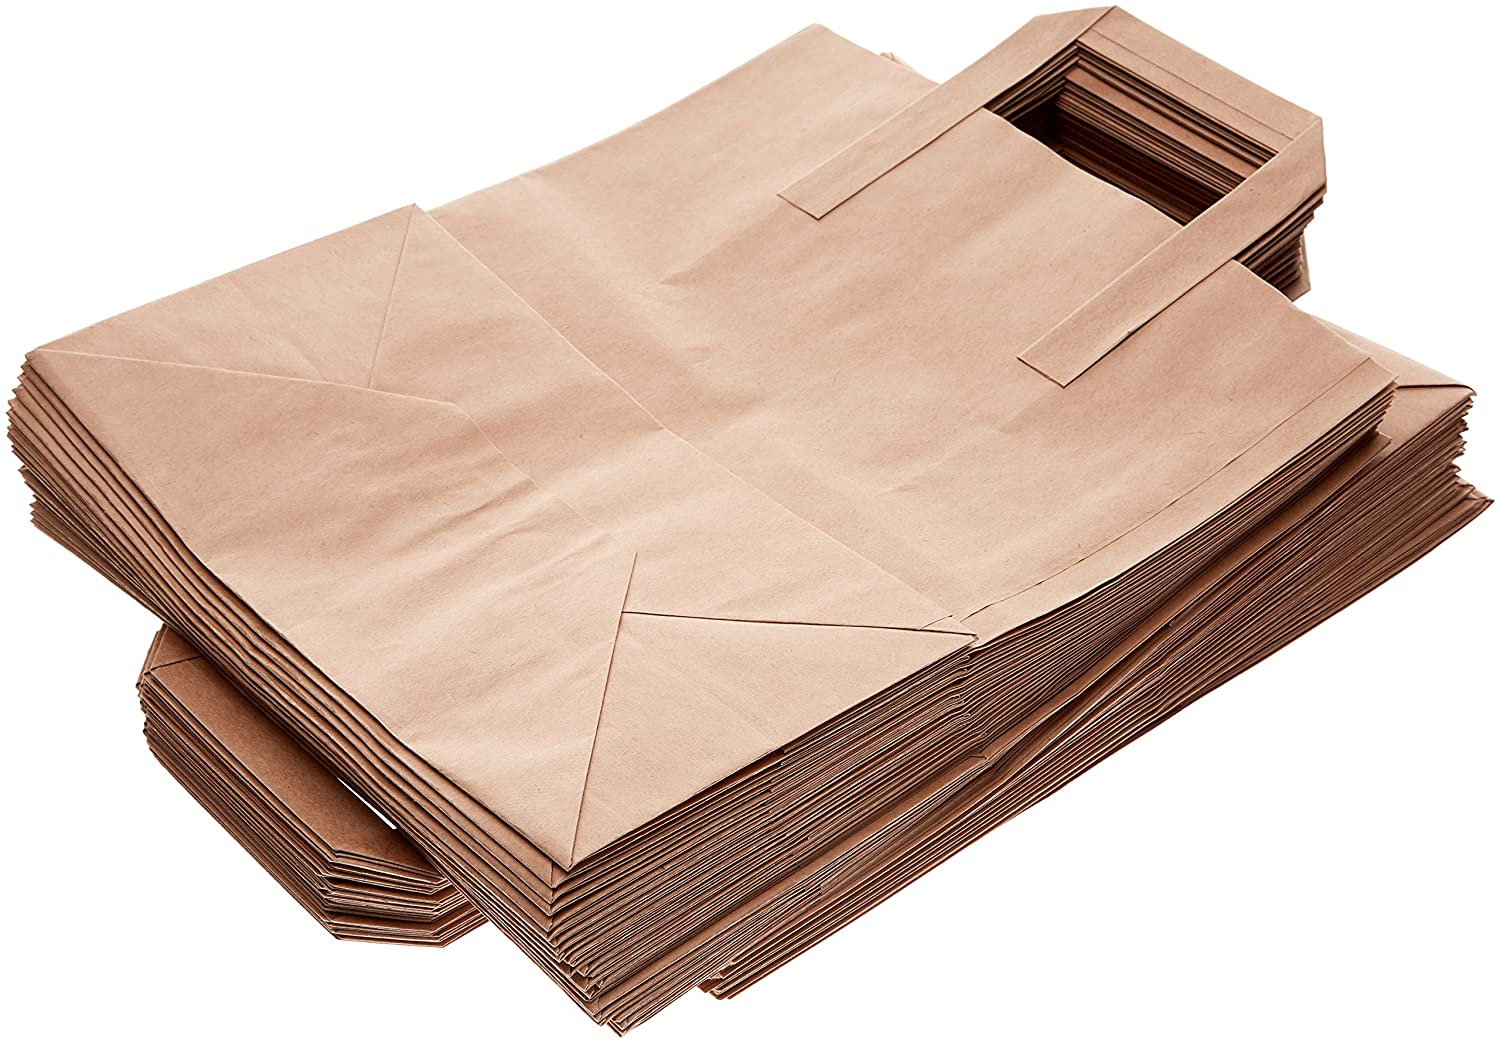 70643de27e7a The Paper Bag Company Brown Paper Carrier Bags with Flat Handles